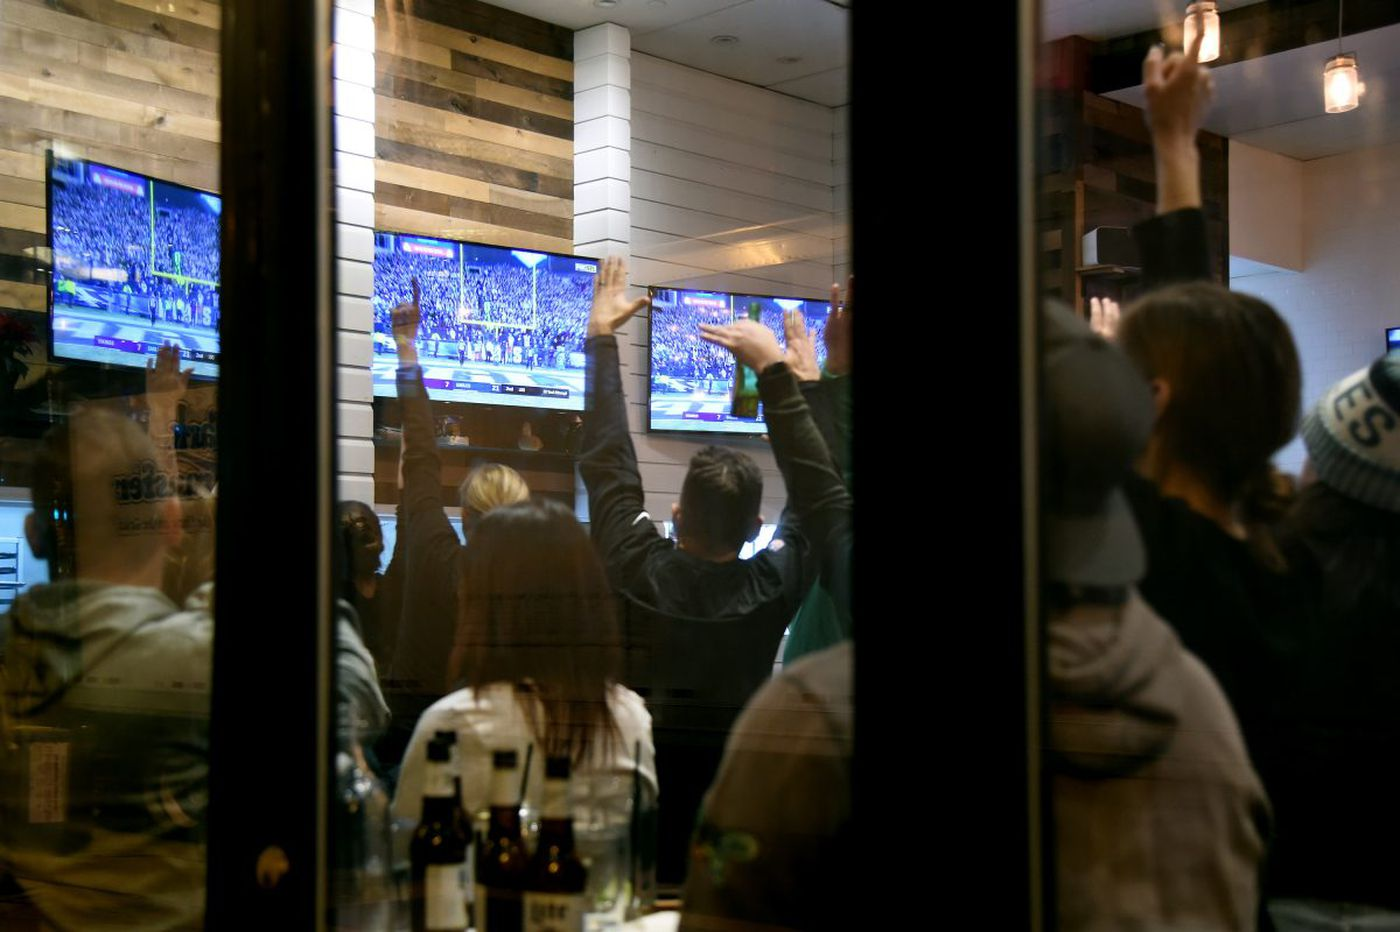 Just how much did Philadelphia wine, spirits sales spike during the Super Bowl?